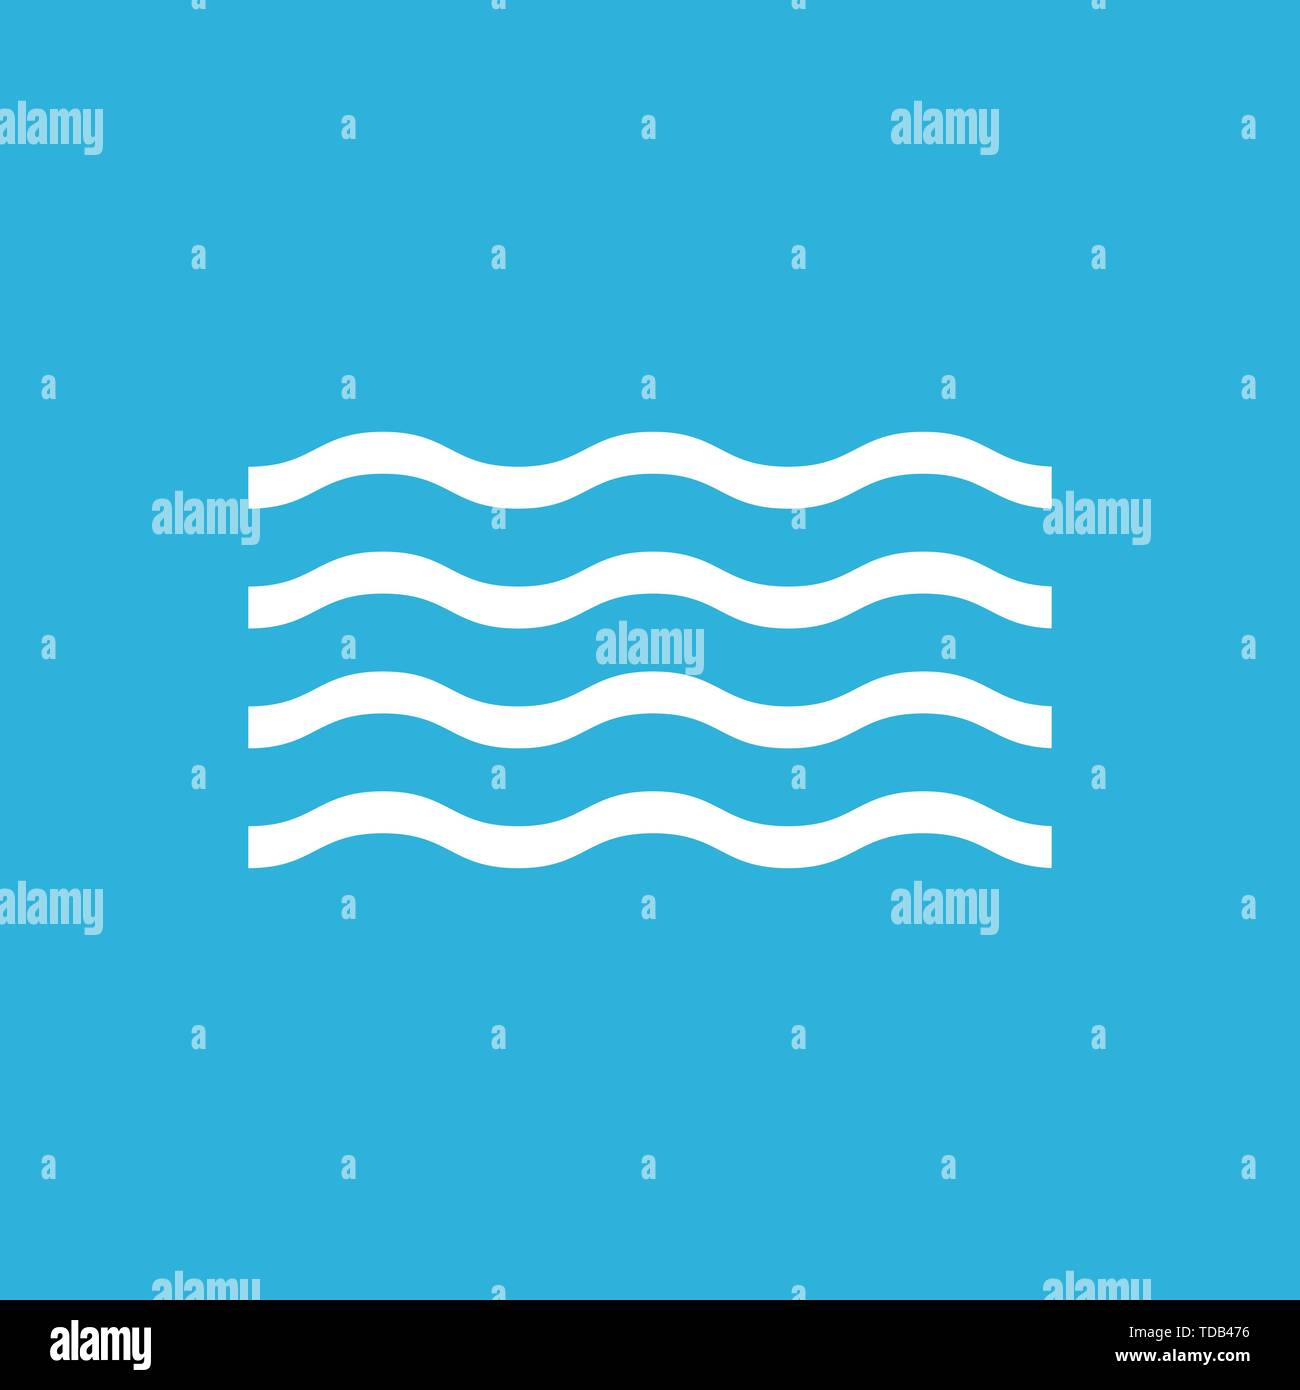 Wave pattern background. nature flat style. Vector - Stock Image